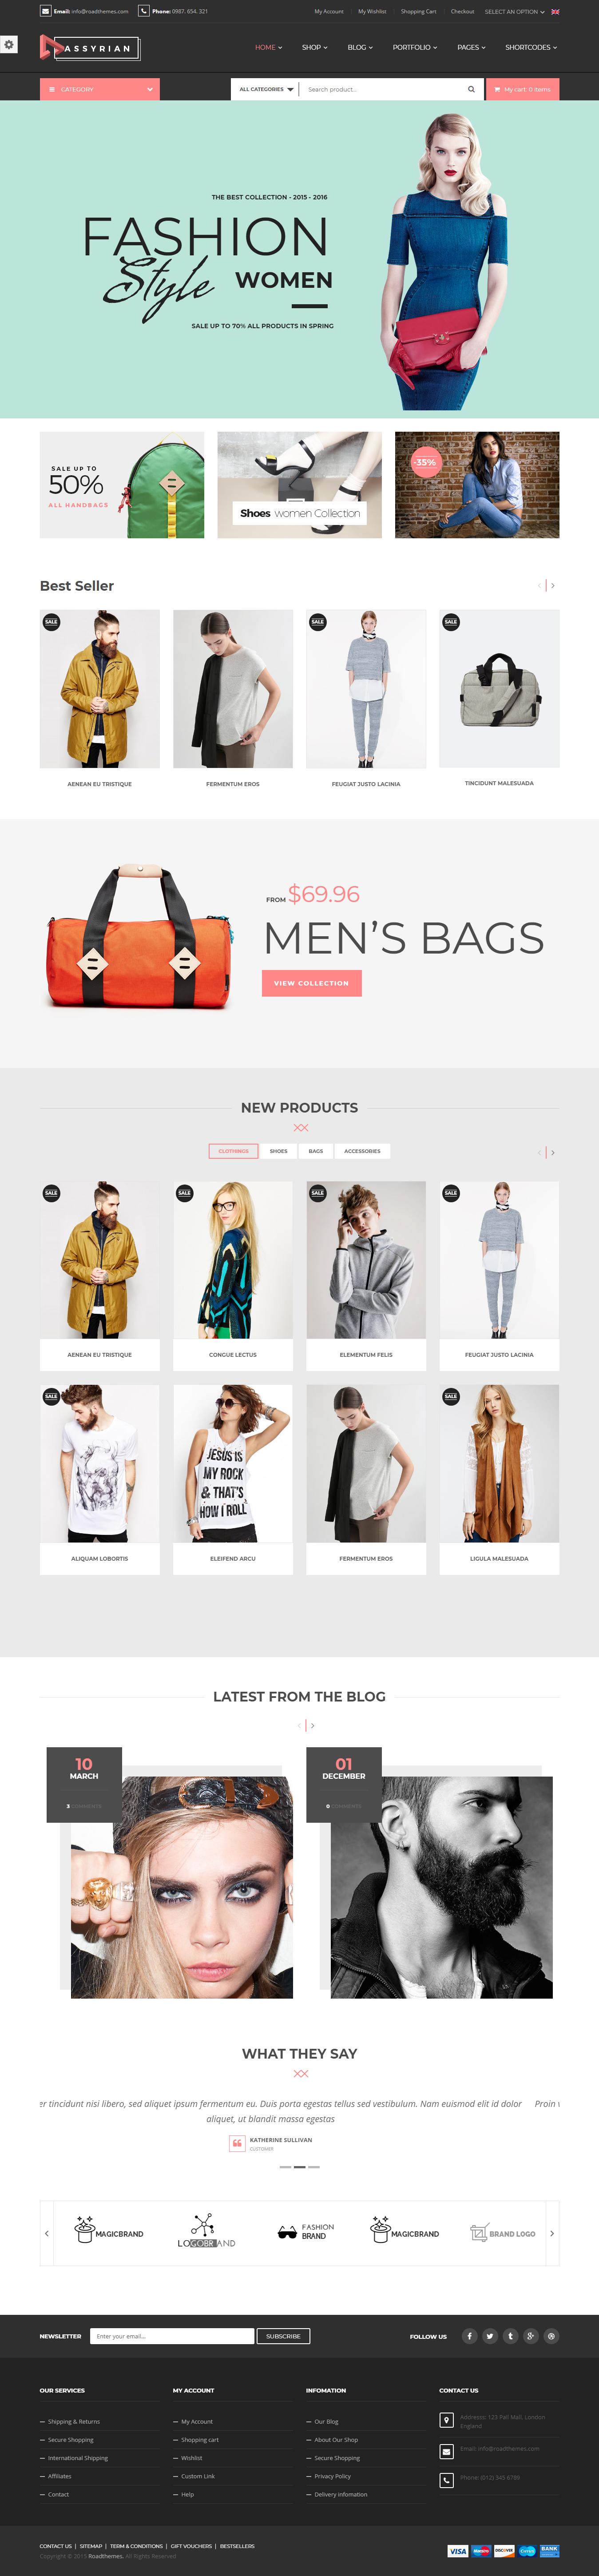 Assyrian - Best Premium Fashion WordPress Themes